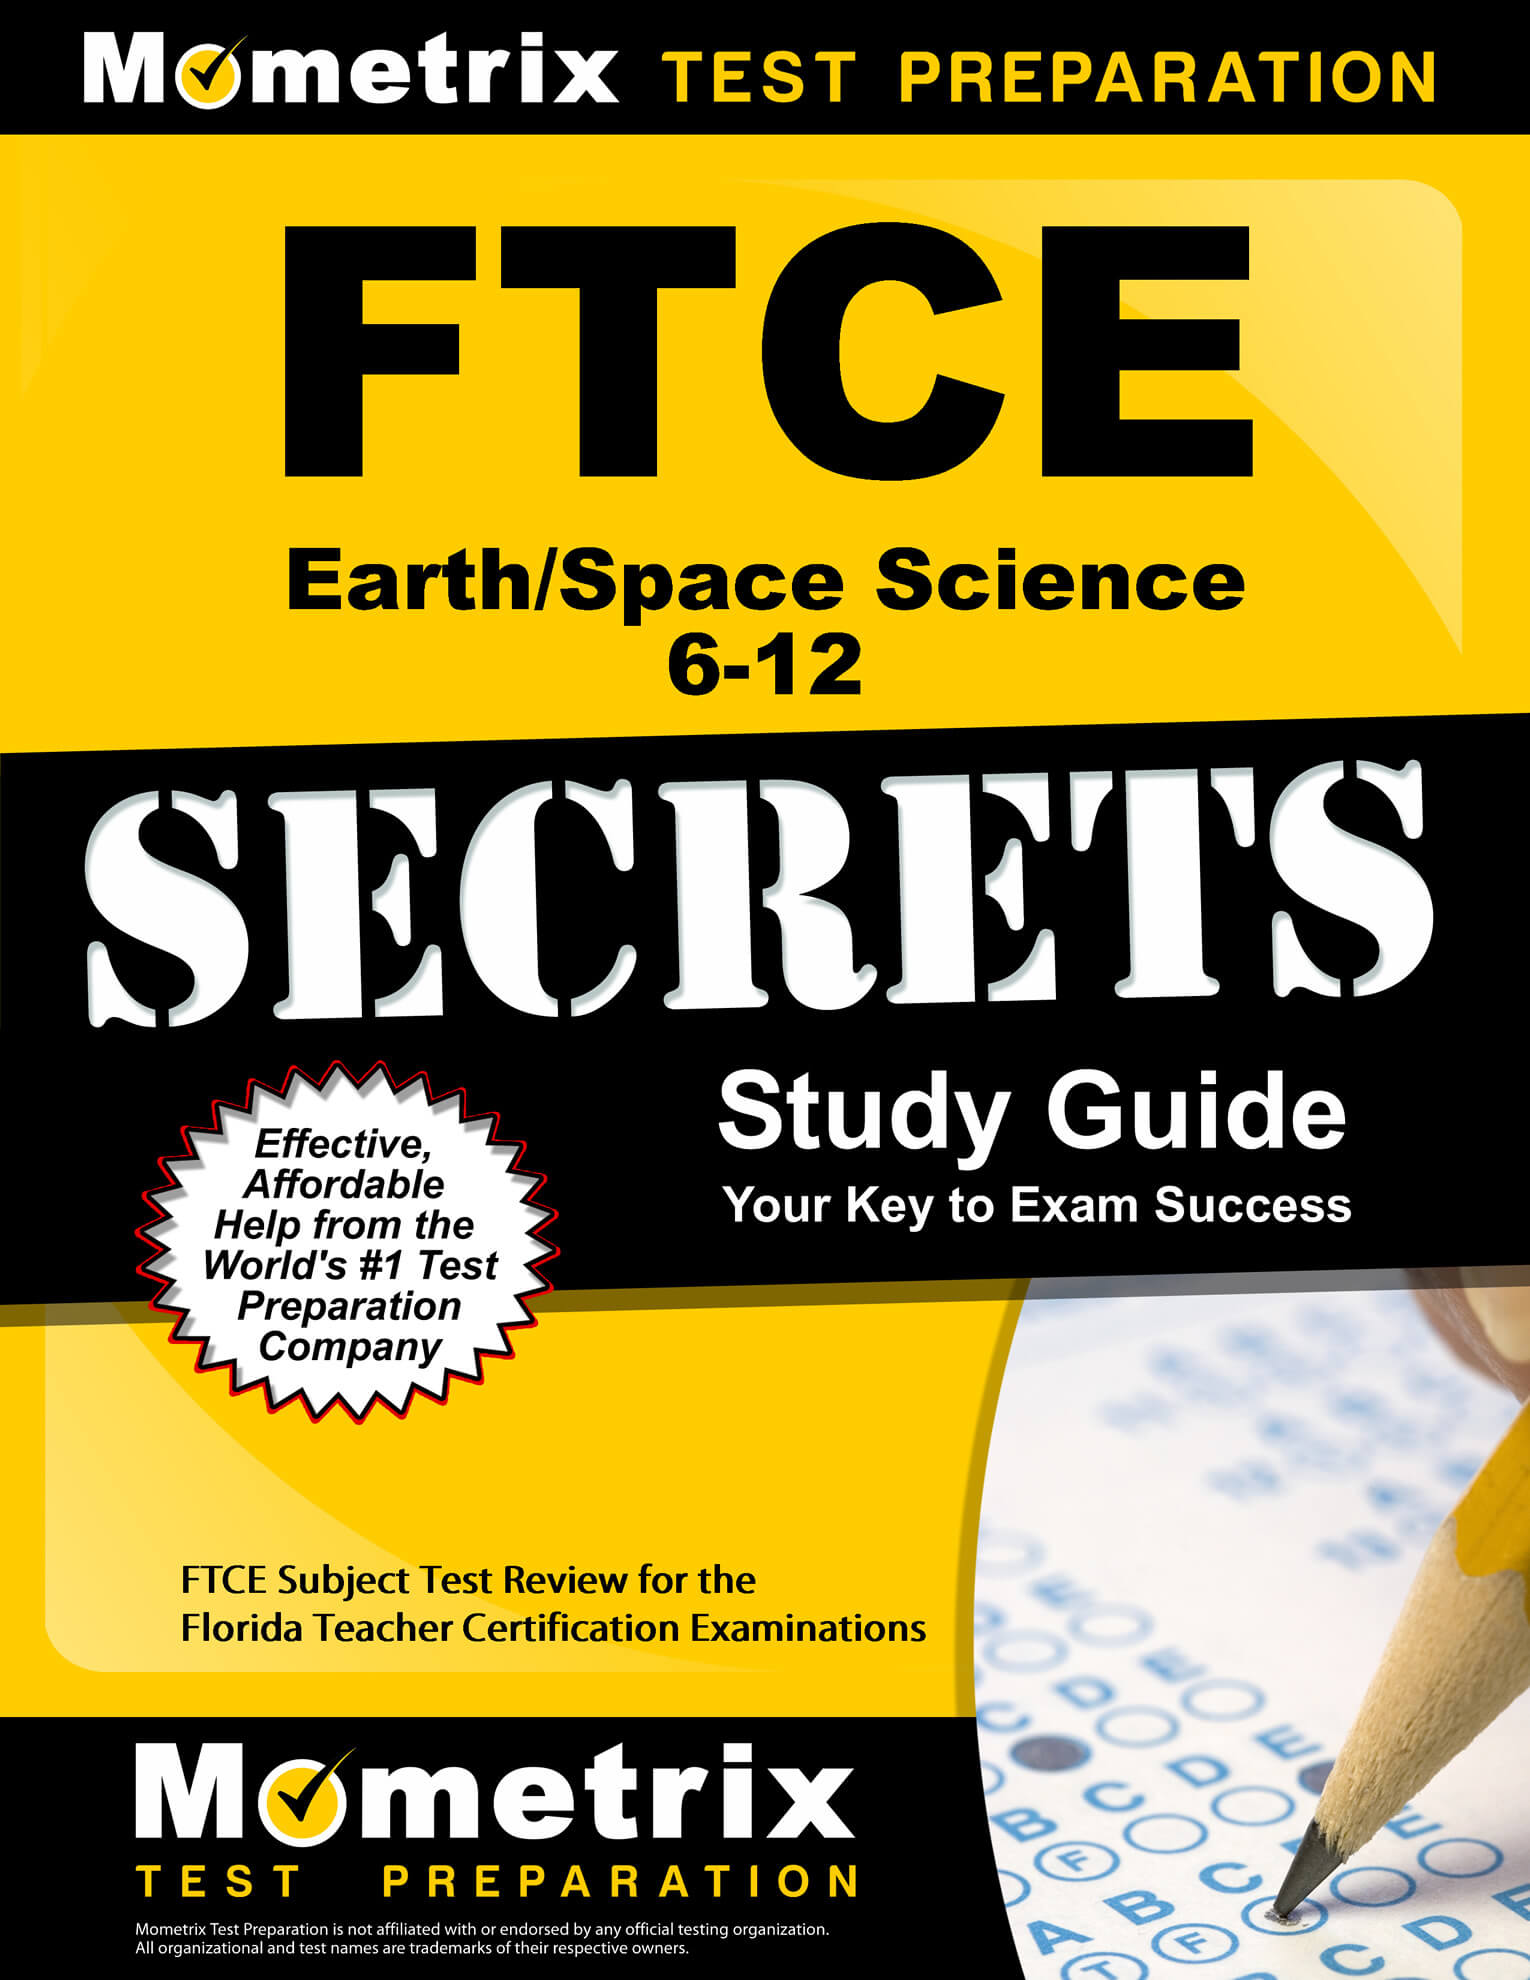 FTCE Earth/Space Science 6-12 Study Guide